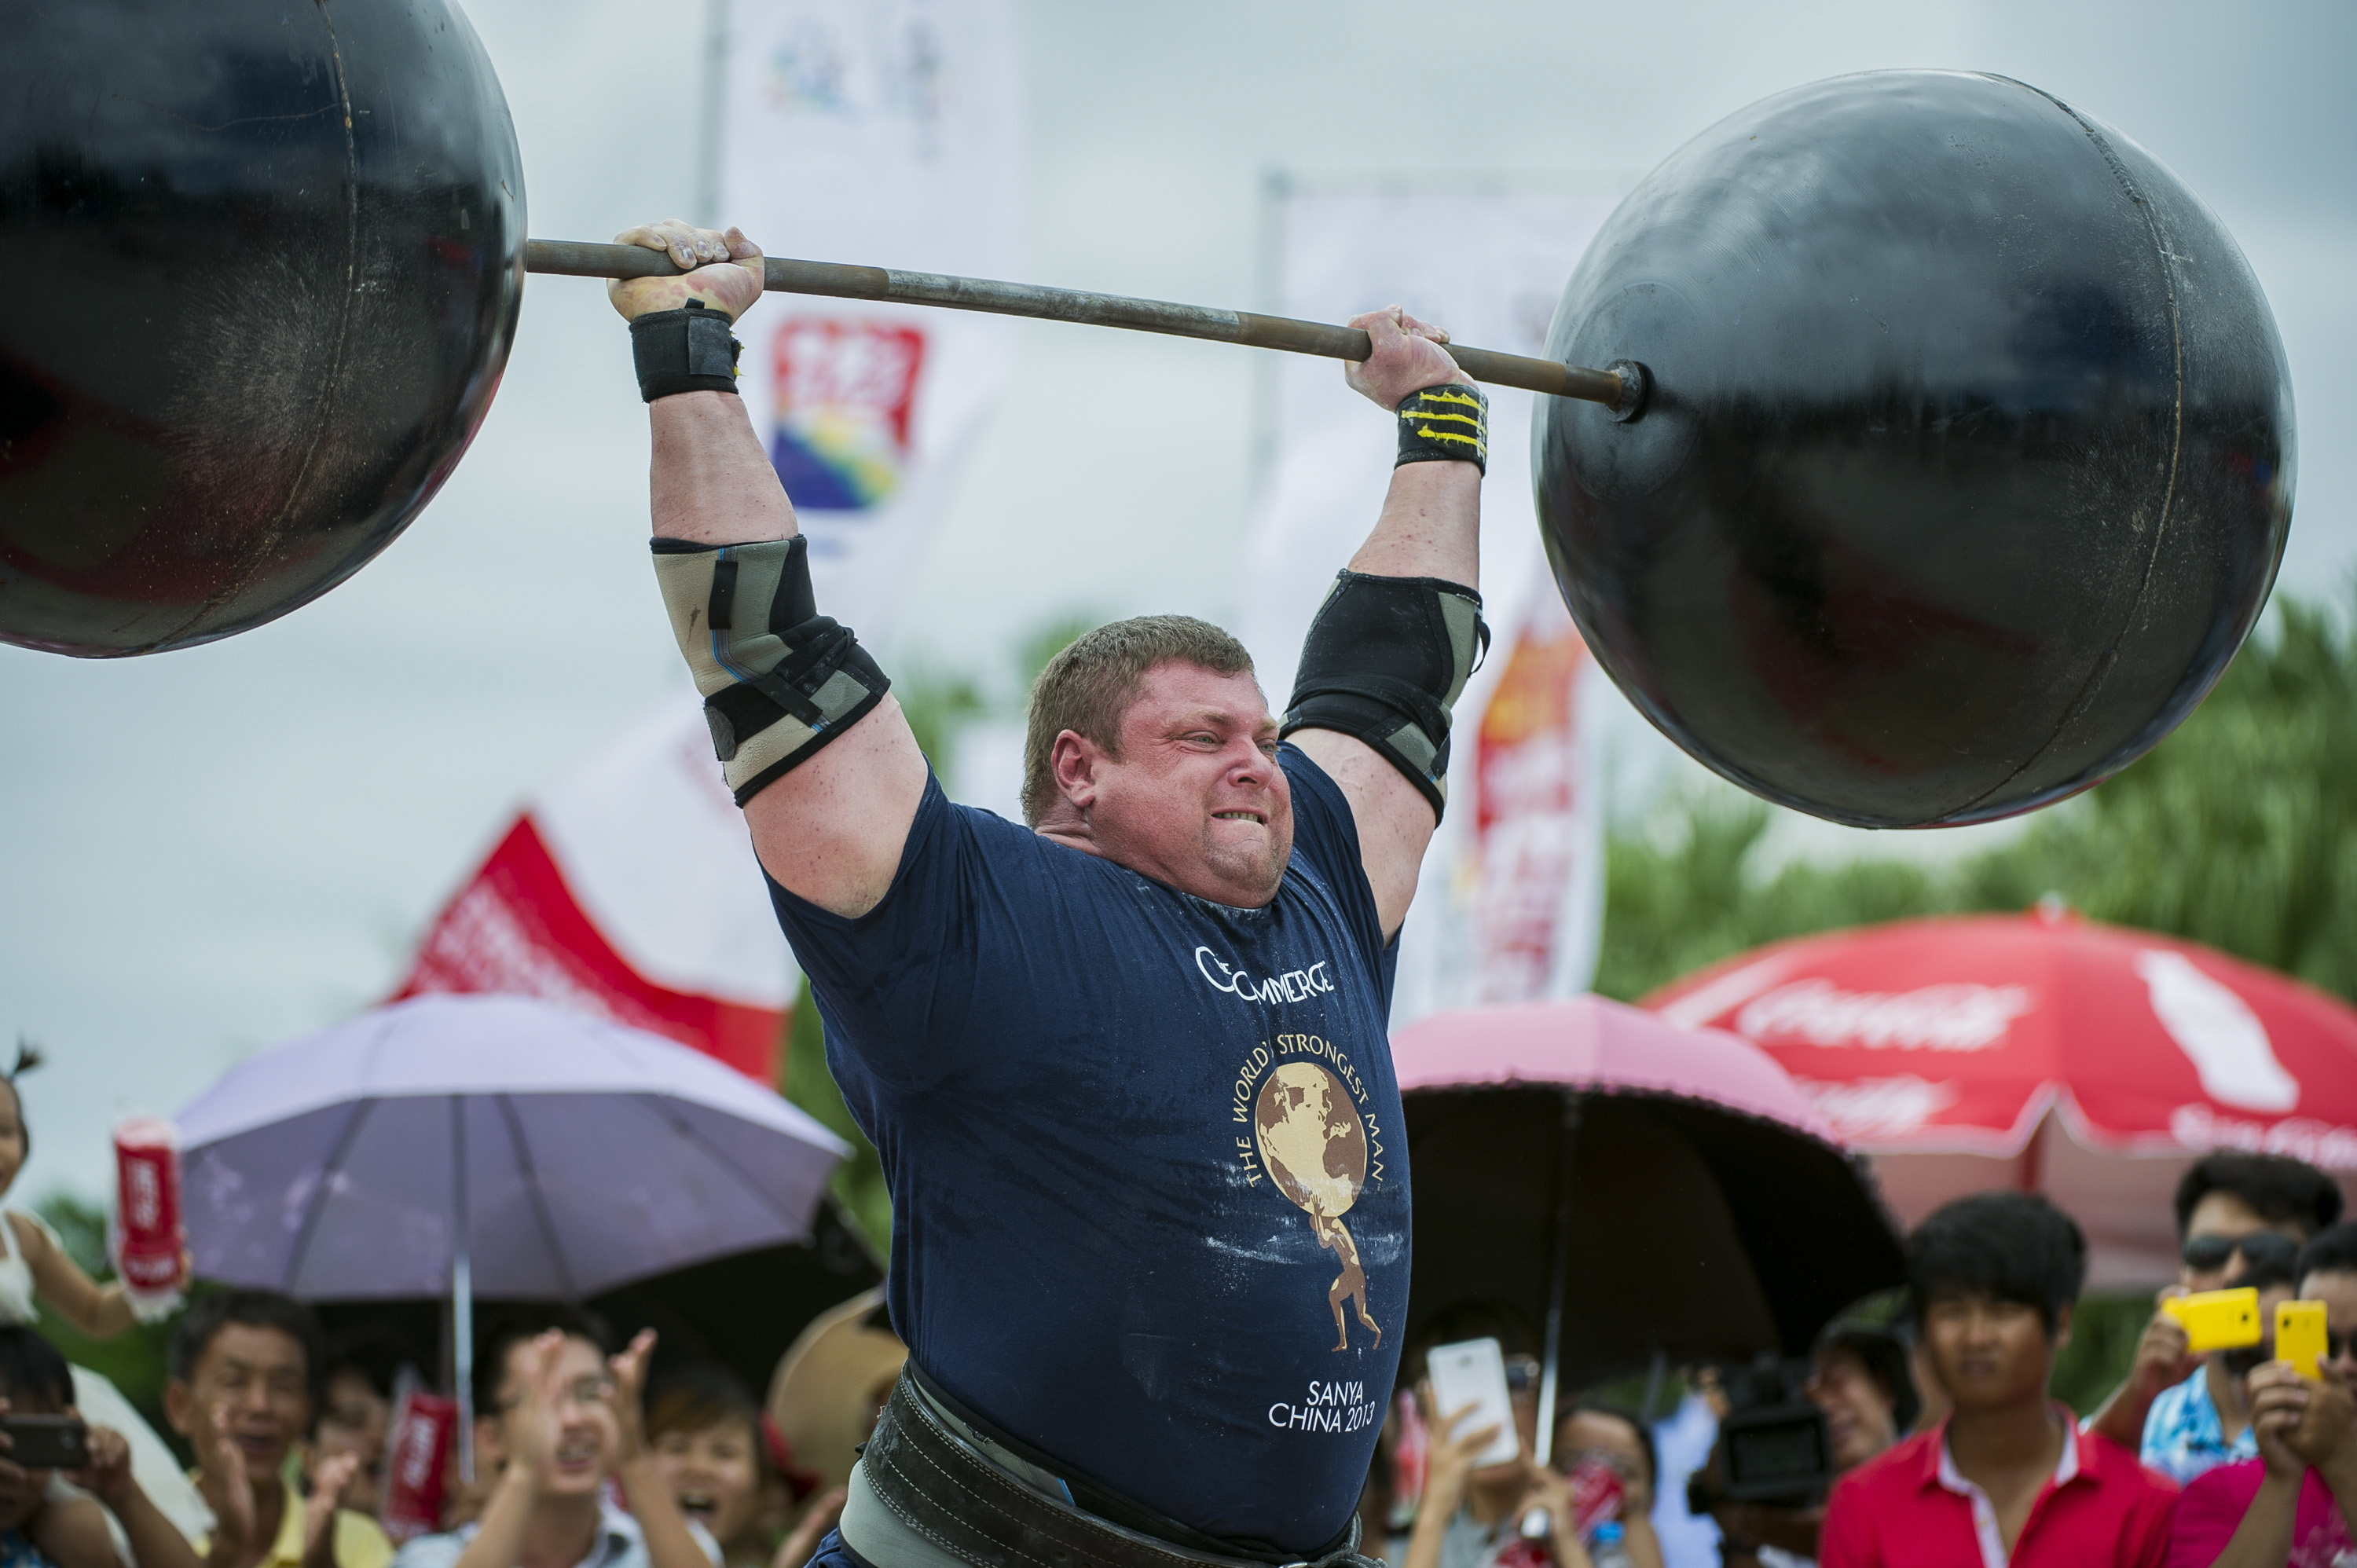 World's Strongest Man champion Zydrunas Savickas is heading to Aberdeen to coach strength enthusiasts.